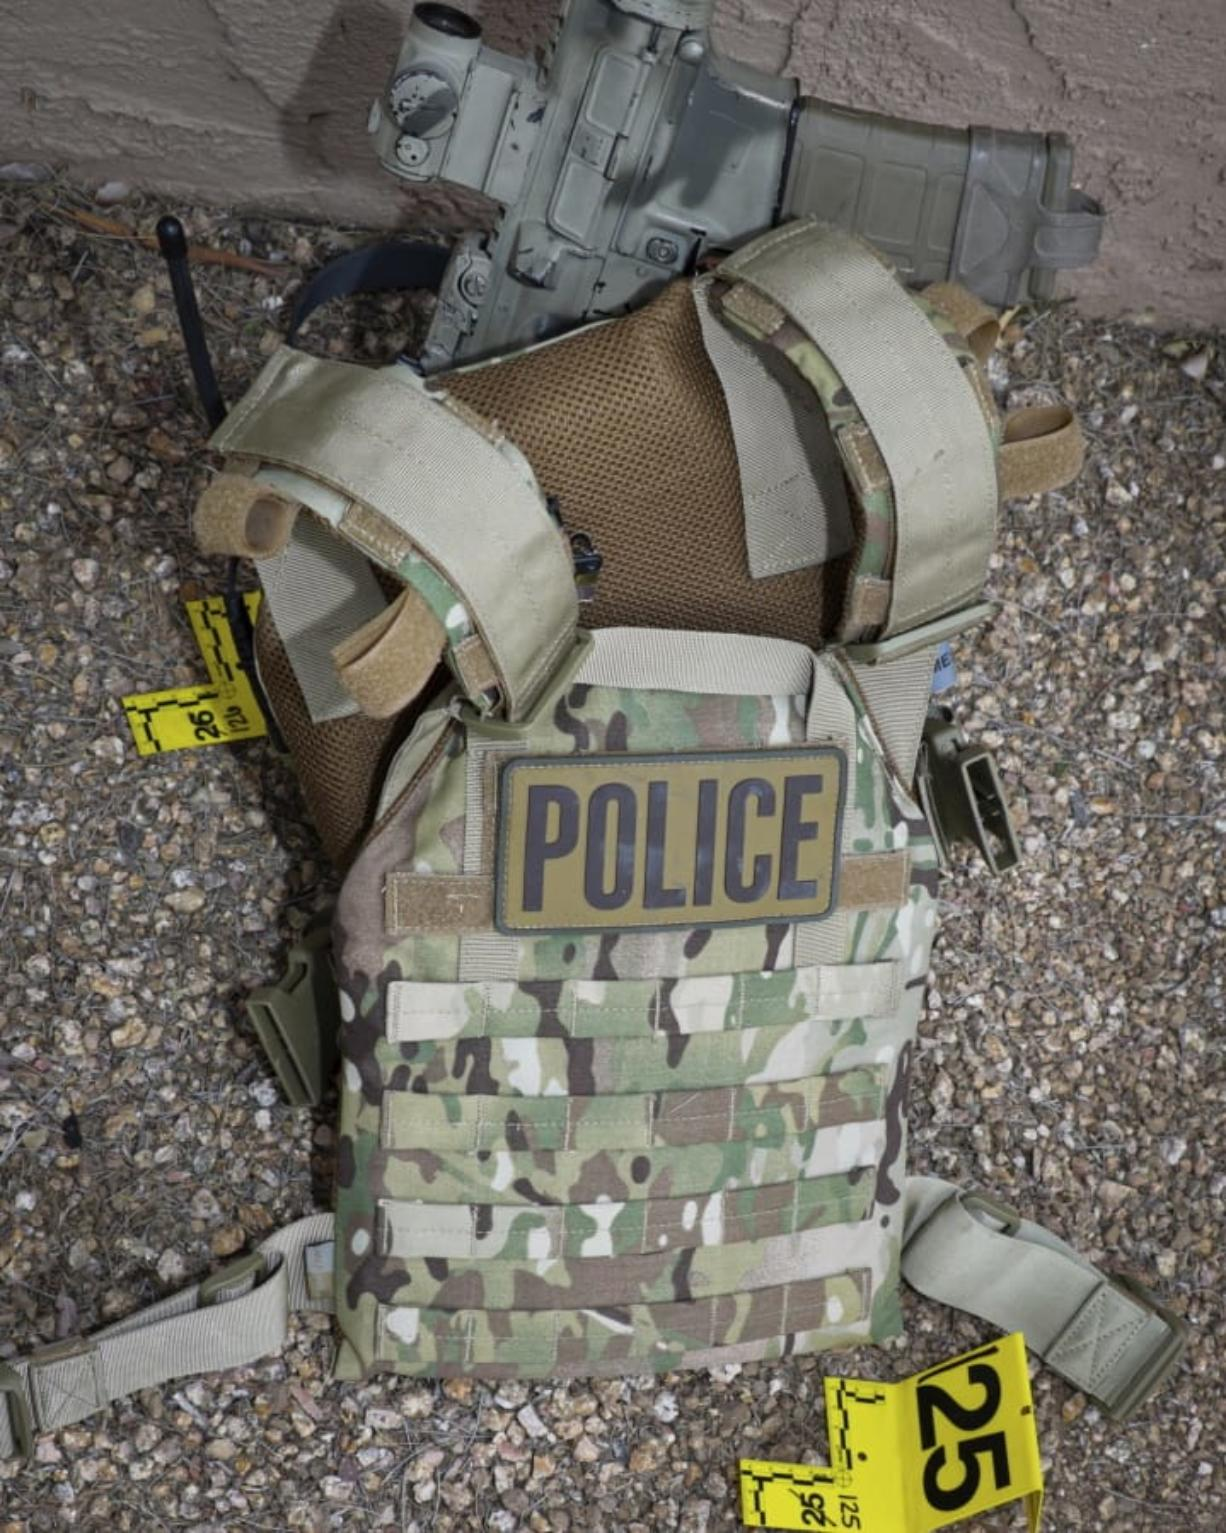 This April 11, 2019 photo provided by the Phoenix Police Department shows a Home Security Investigations agent's camouflage M4 rifle and armored vest at the scene of an agent-involved shooting in Phoenix, Ariz. The shooting although extreme, was not an isolated incident. Since 2011, there have been at least 13 shootings involving HSI agents 'Ai most of them in 2018-19, according to an investigation by the Howard Center for Investigative Journalism.